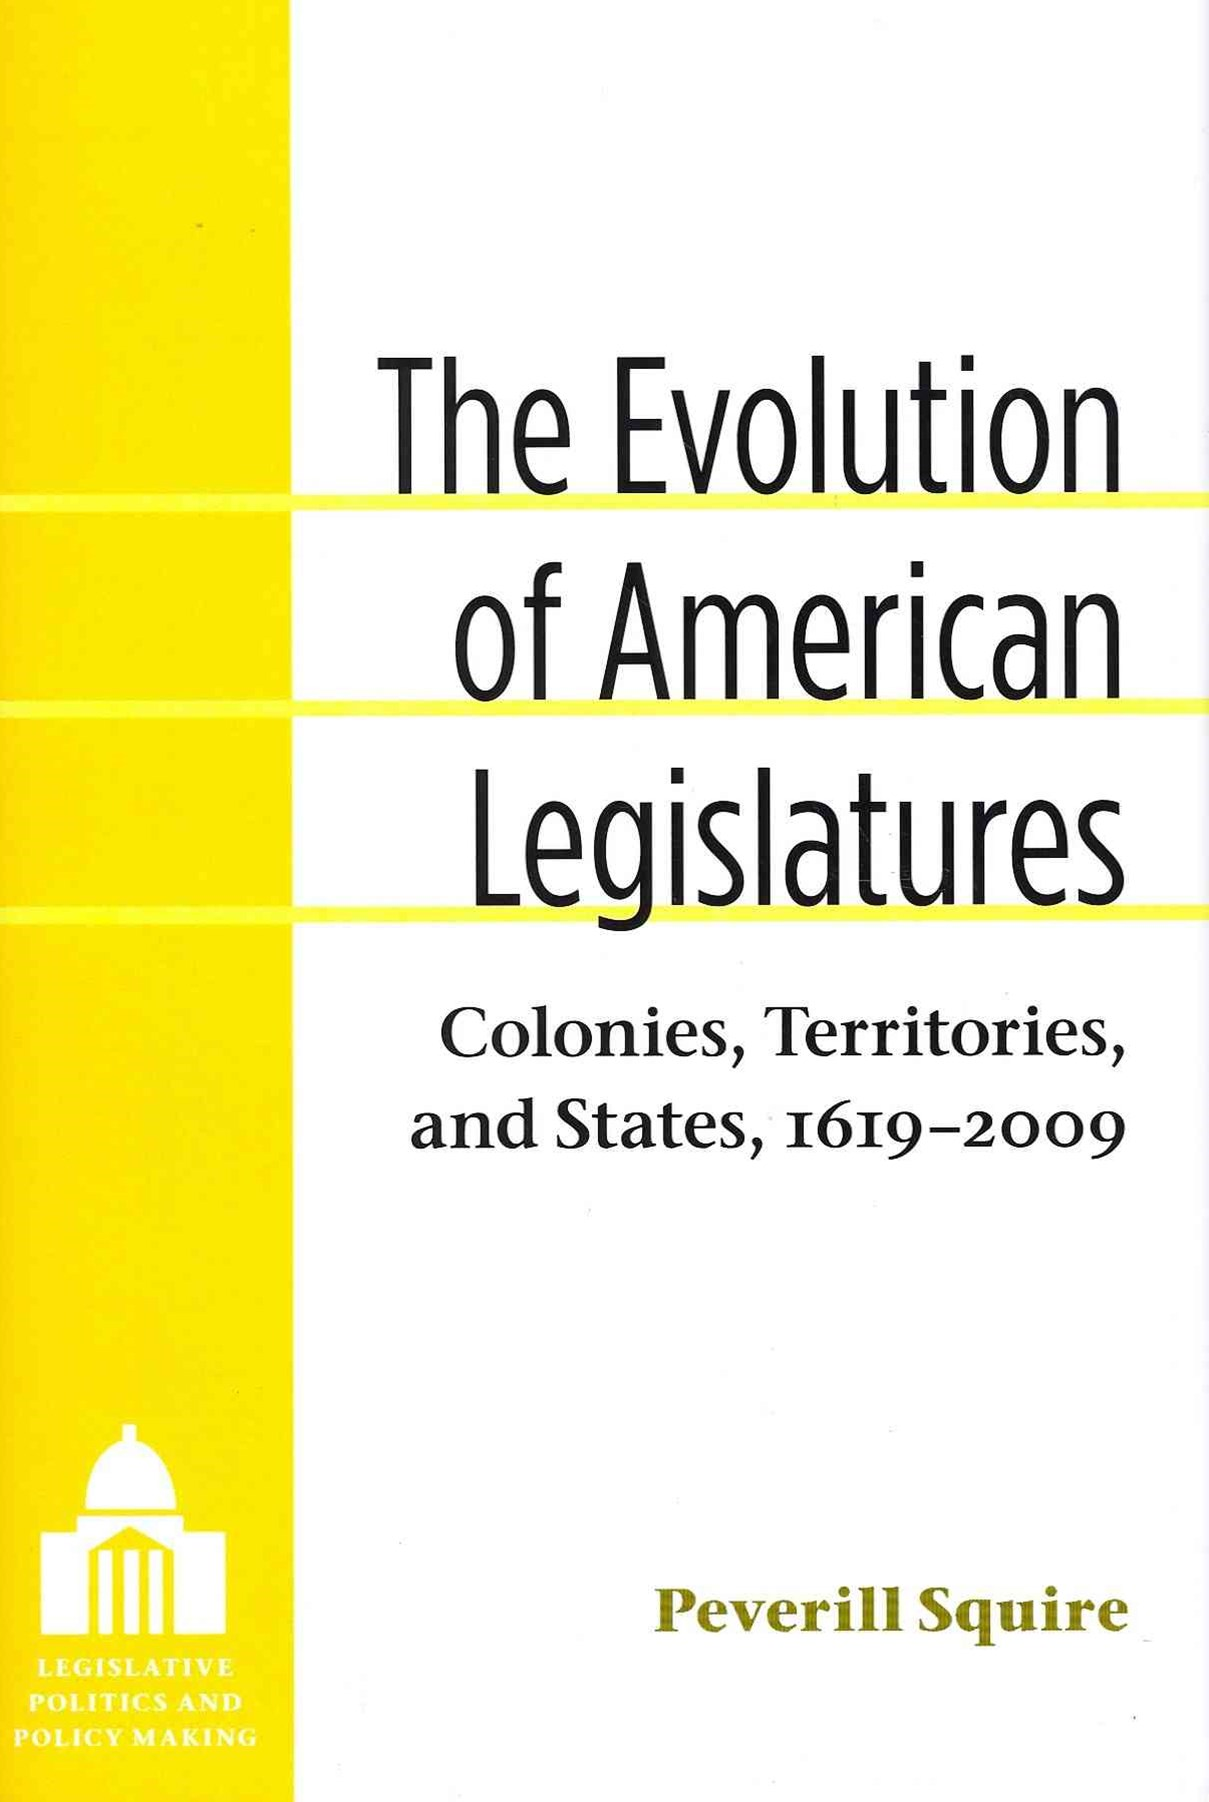 The Evolution of American Legislatures